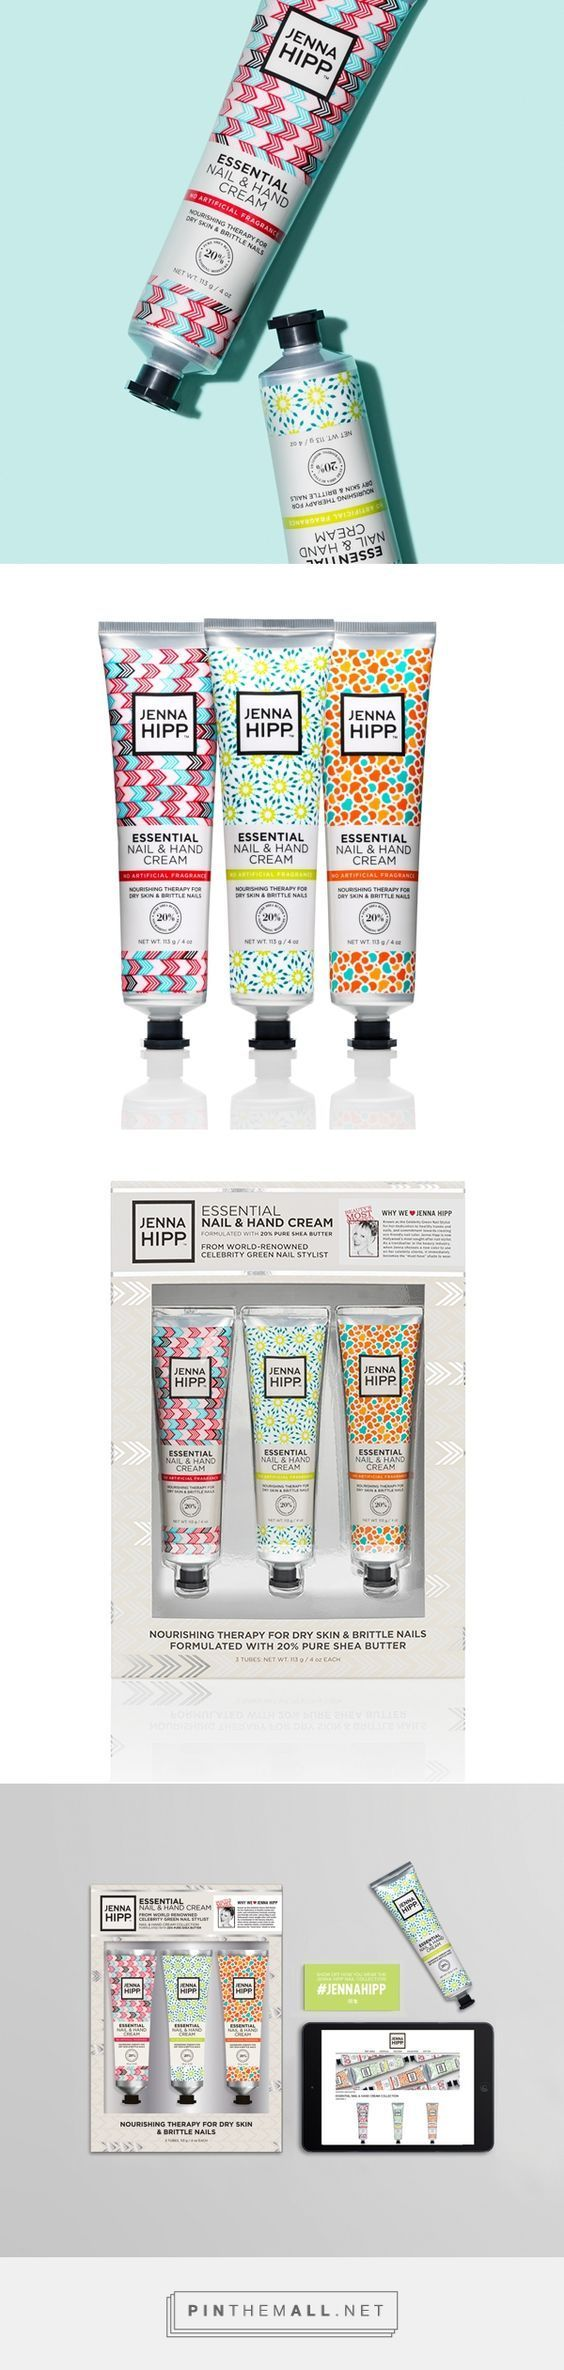 Jenna Hipp Hand and Nail Cream Packaging by Kasey Dasko | Fivestar Branding Agency – Design and Branding Agency & Curated Inspiration Gallery